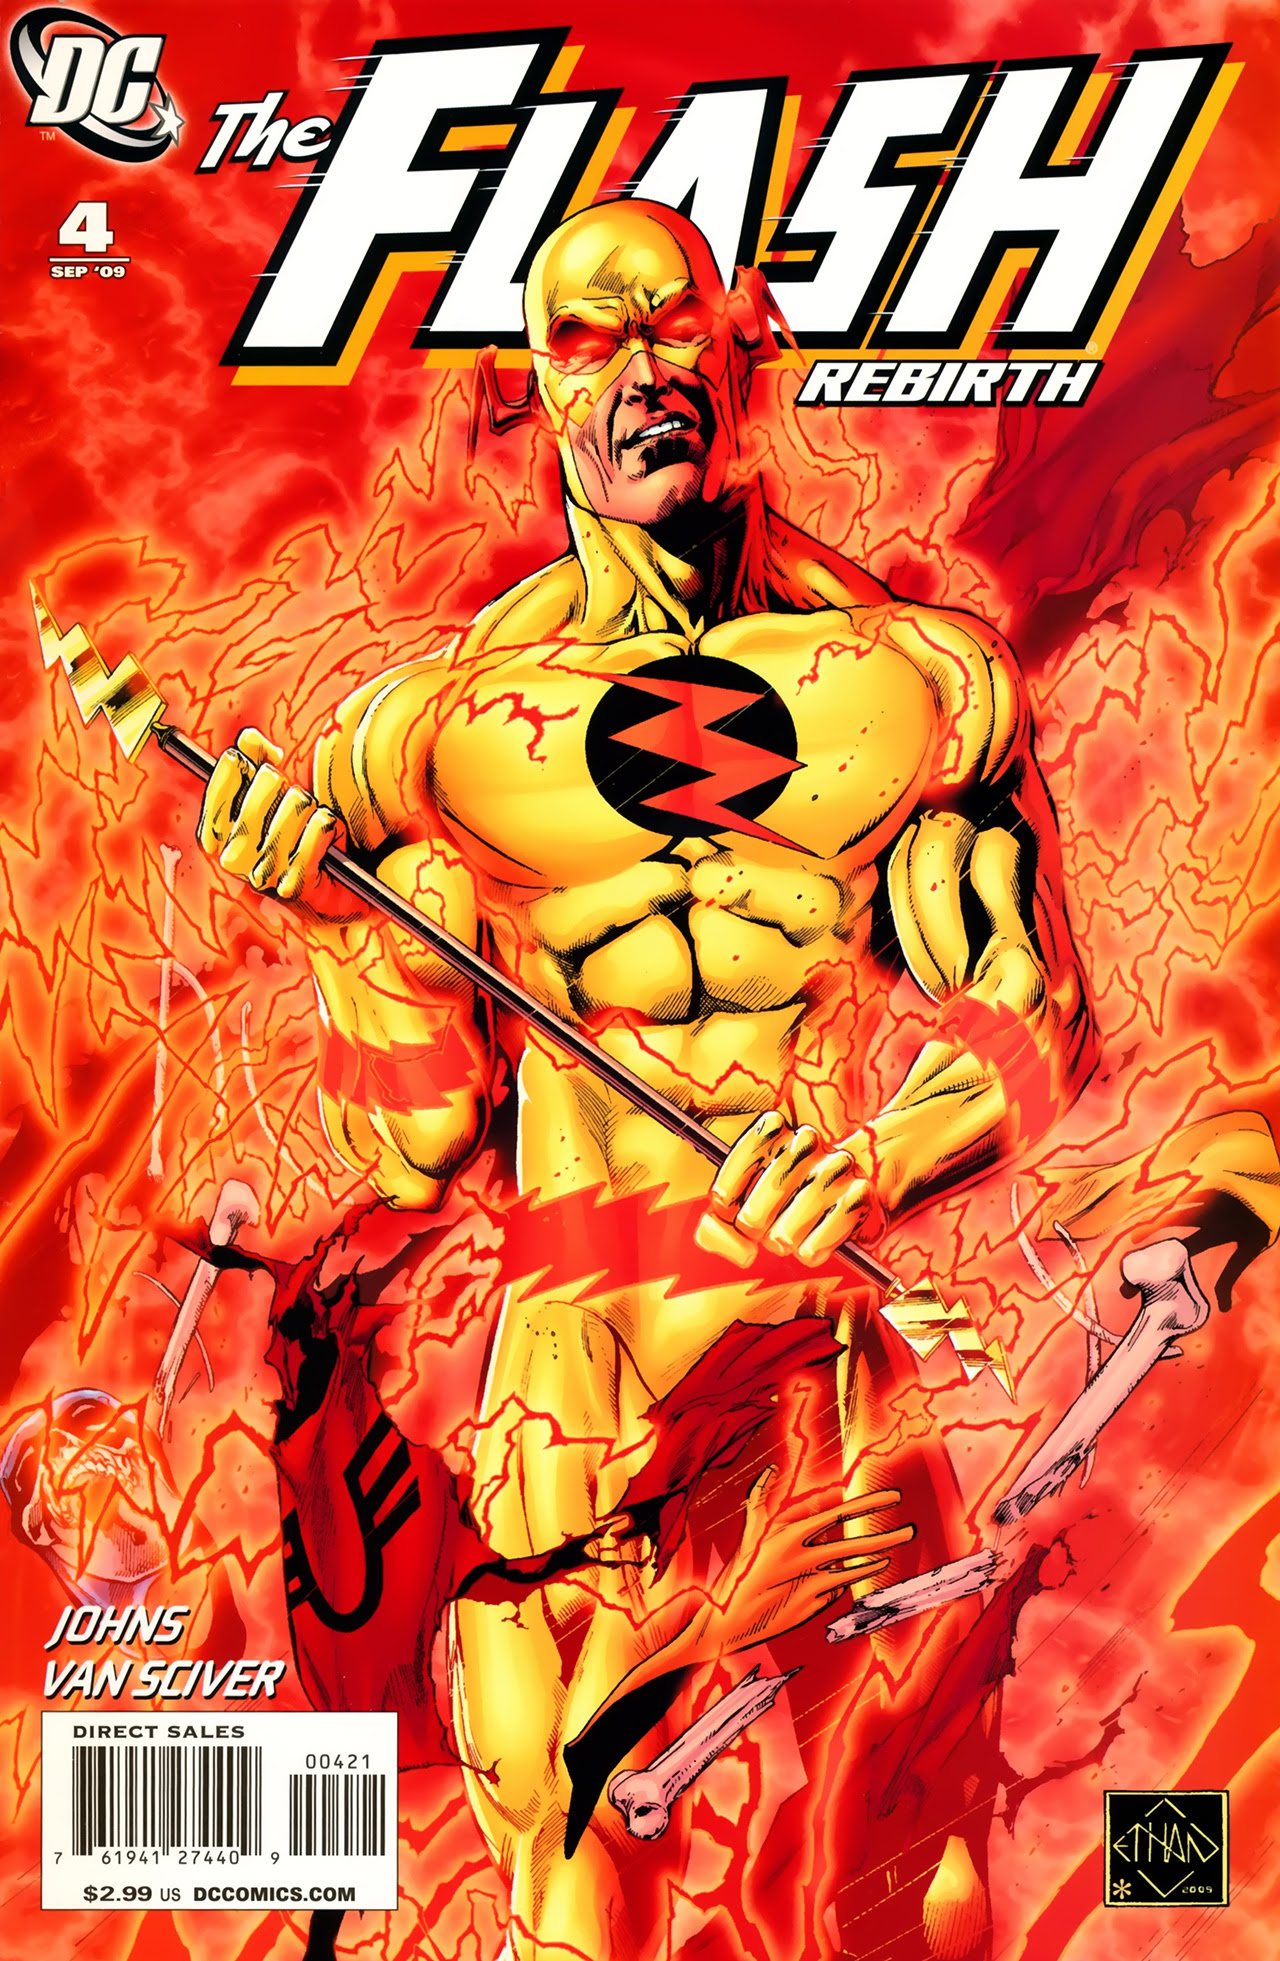 http://img2.wikia.nocookie.net/__cb20100308074911/marvel_dc/images/d/da/Flash_Rebirth_Vol_1_004_Variant.jpg